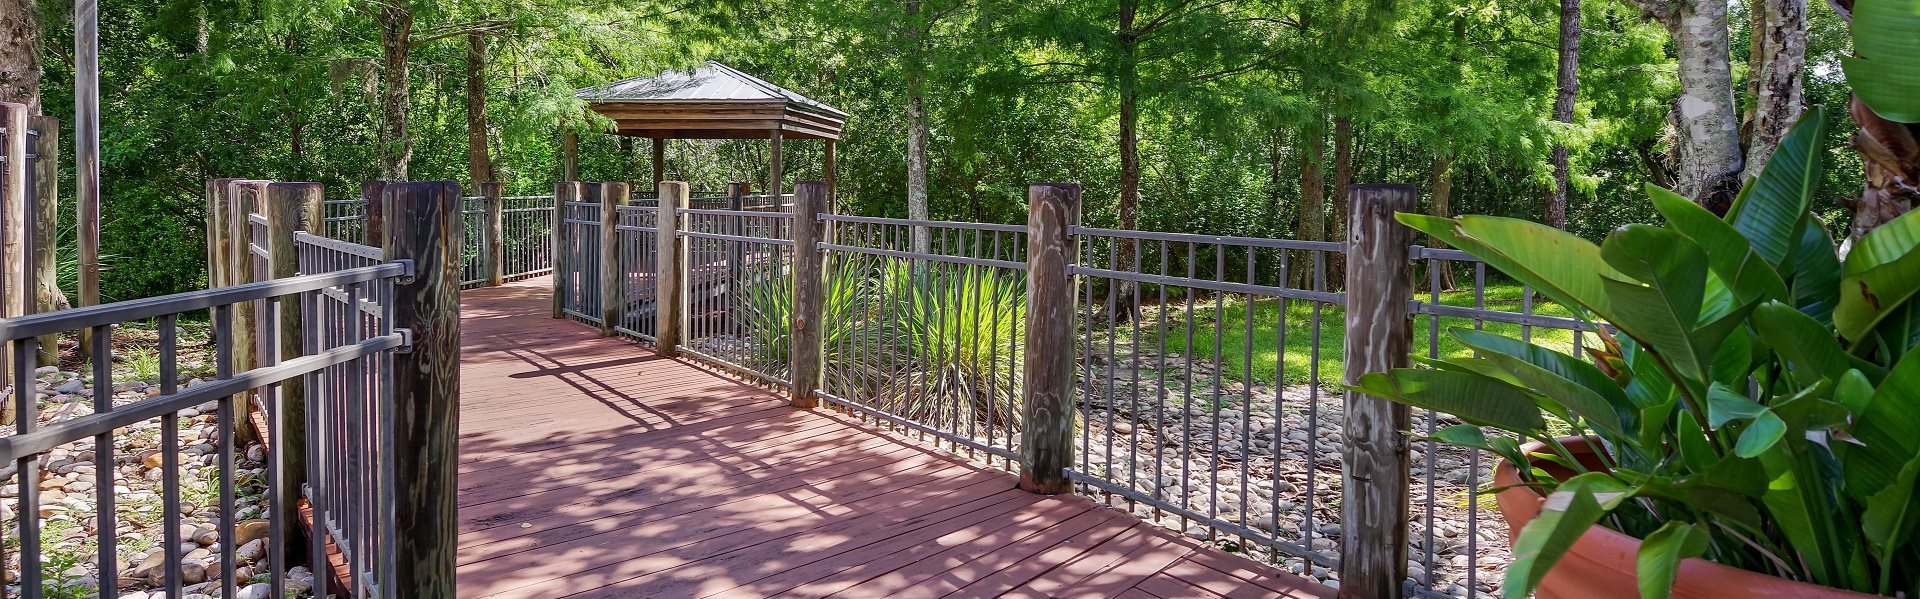 Deck Style Walkway with Railing Going through Trees